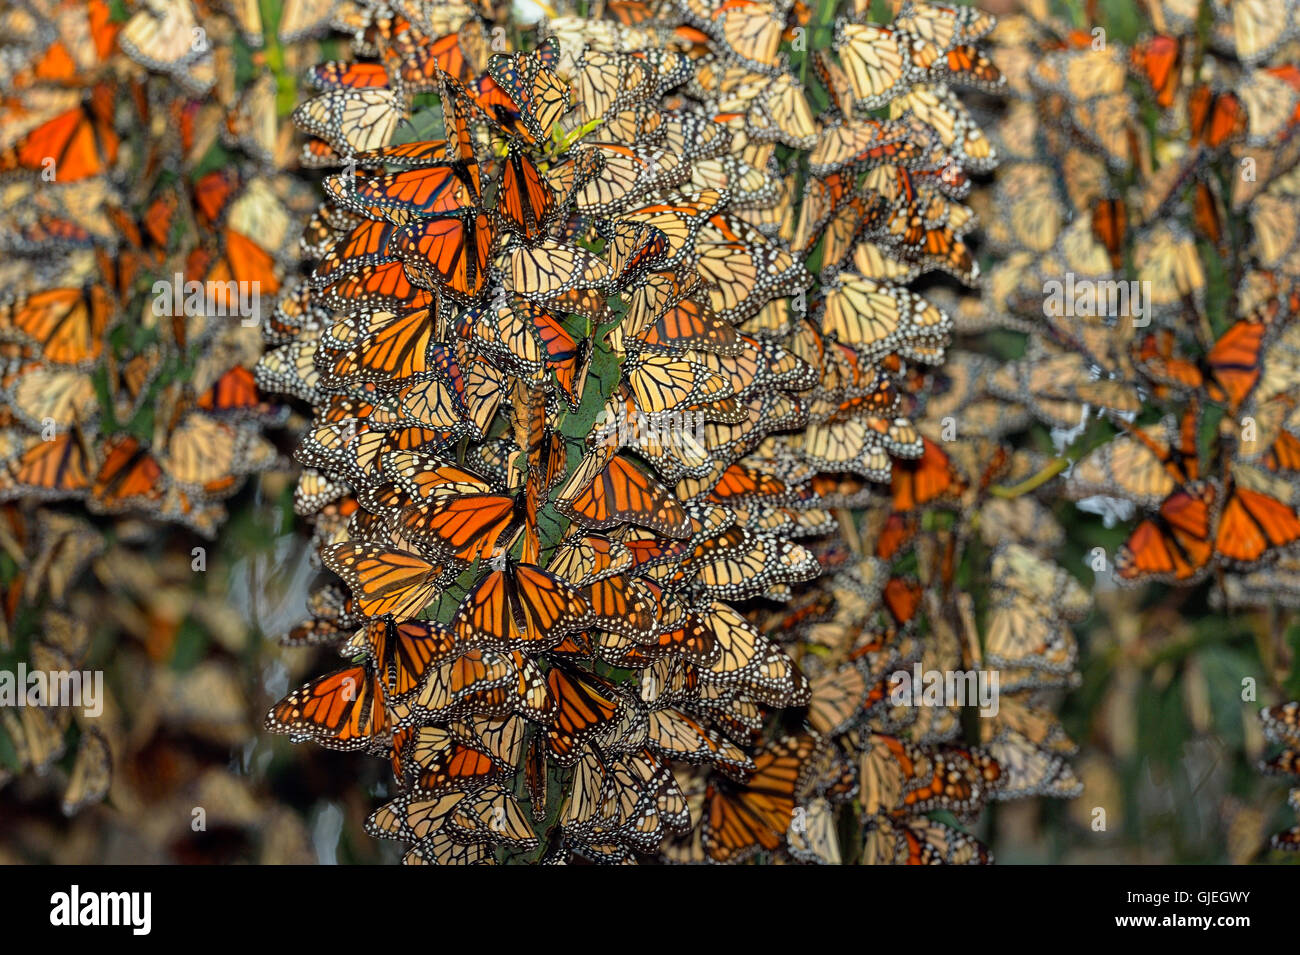 Monarch Danaus Plexippus Winter Colony Roosting In